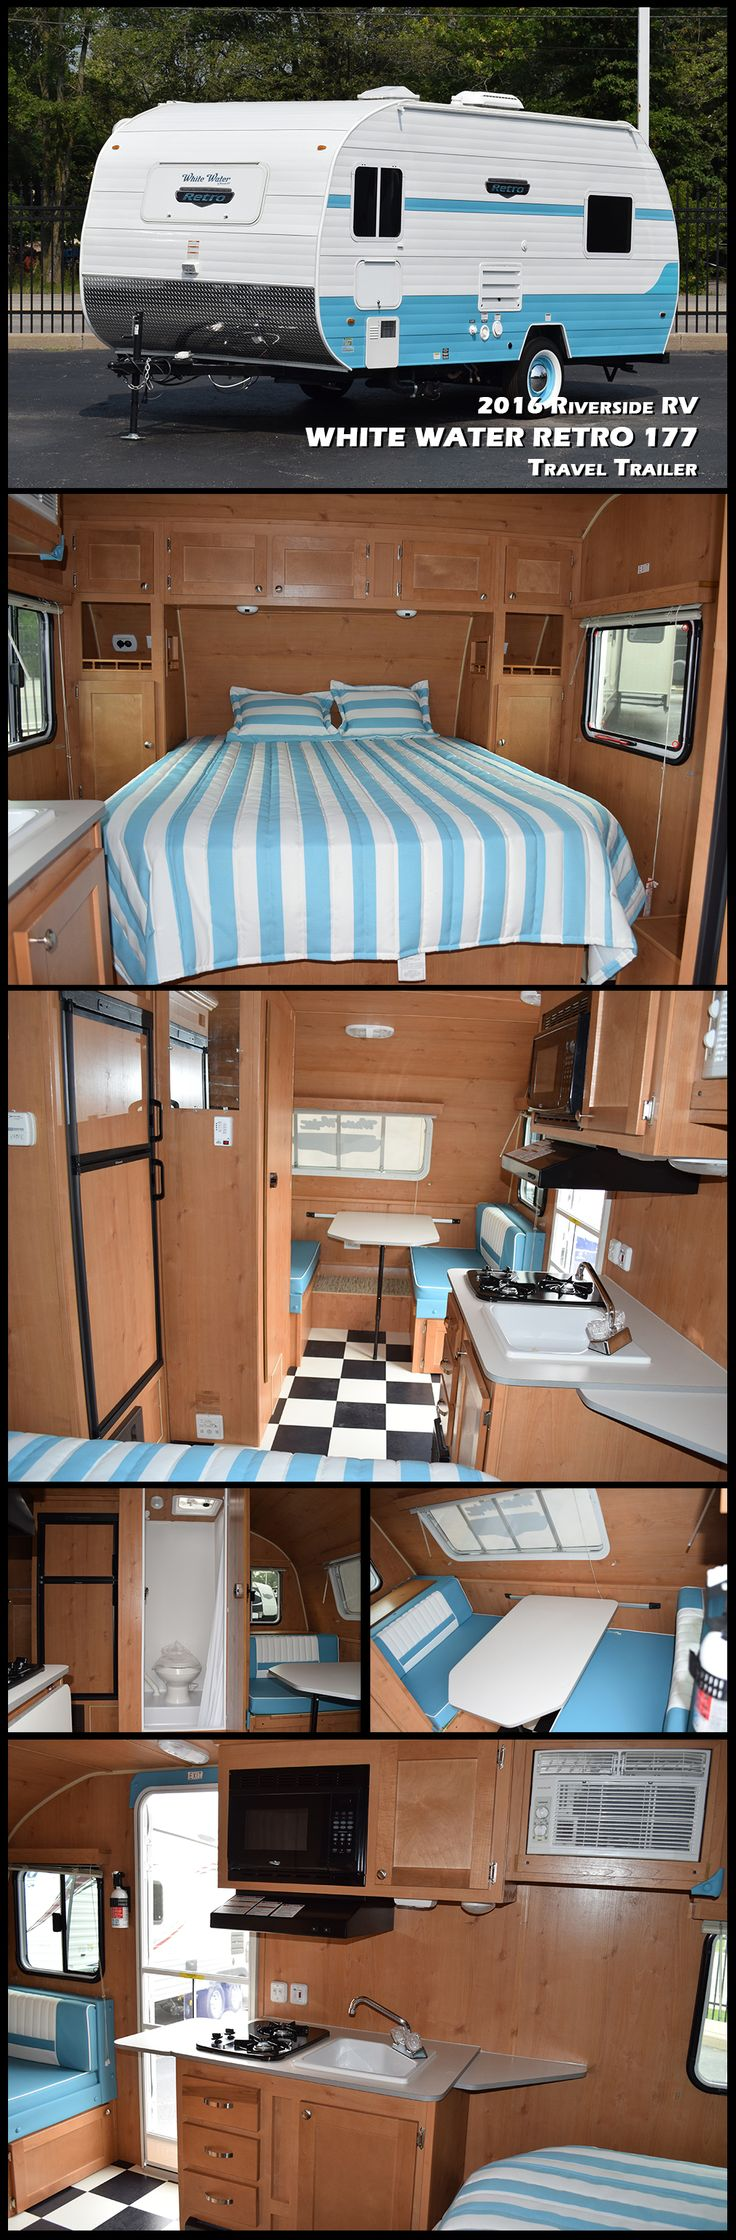 """This 2016 RIVERSIDE RV WHITE WATER RETRO 177 Ultra-Lite travel trailer has everything you would want while camping, including AC, furnace, bathroom/shower, galley with large sink and microwave oven, 2 stove top burners, refrigerator, dinette booth/bed, and a 60"""" by 74"""" walk-around bed. True Amish craftsmanship goes into each unit, and although they look like a throw-back to the 1950's, these trailers have lightweight aluminum framework for strength and durability."""